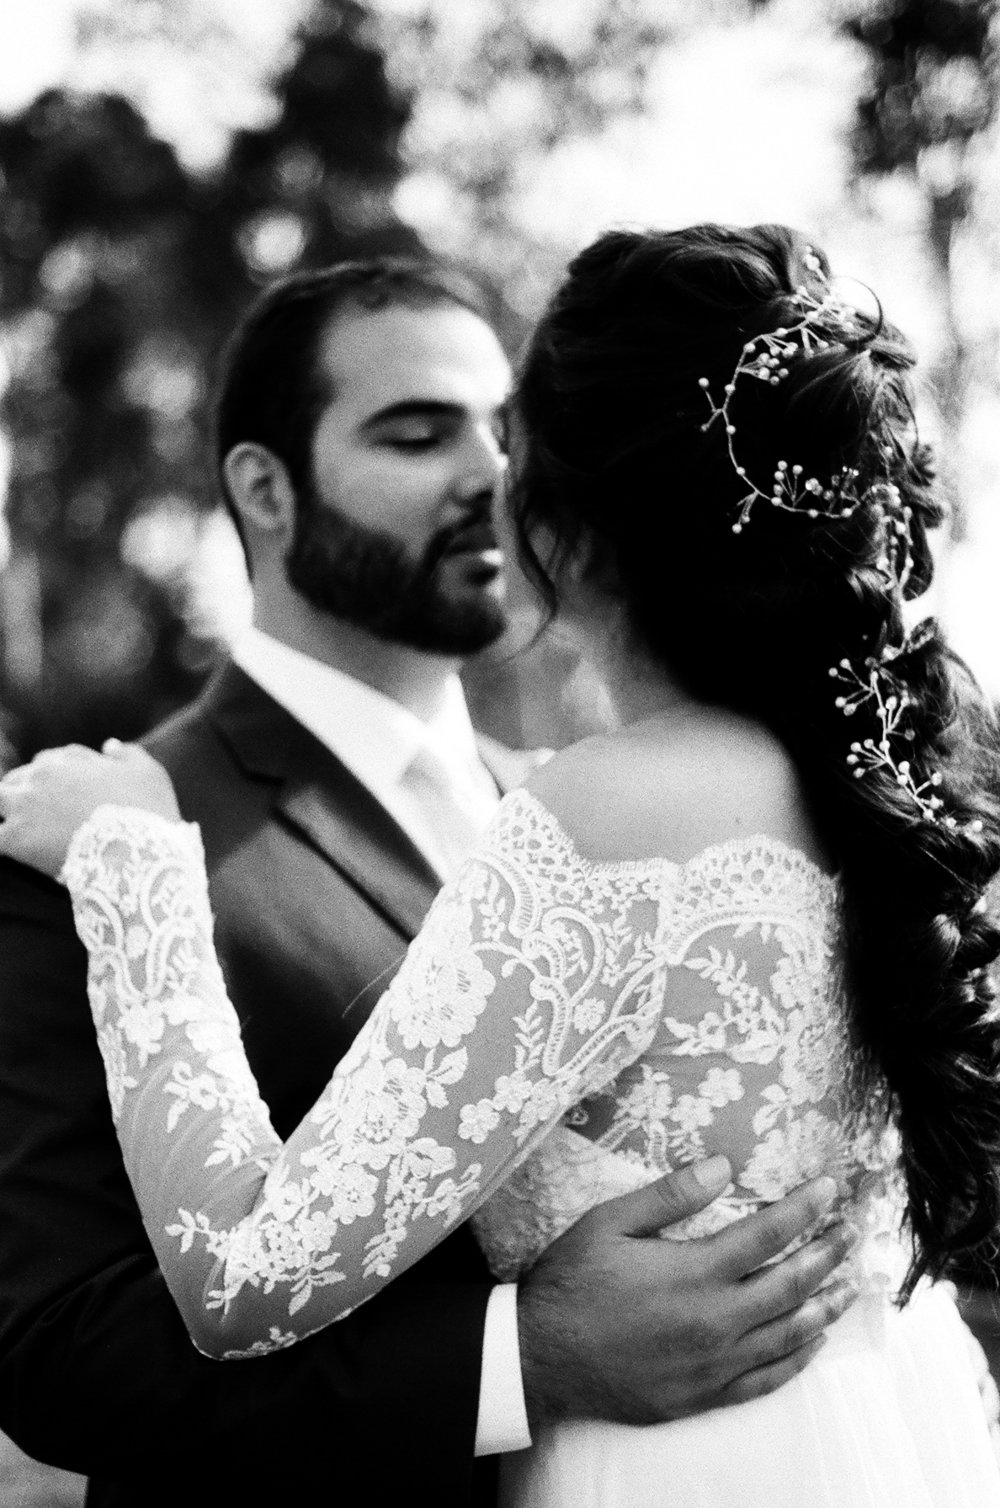 black and whitephotograph of bride and groom Embracing each other Before the ceremony taken by Joseph Barber wedding photography newport beach